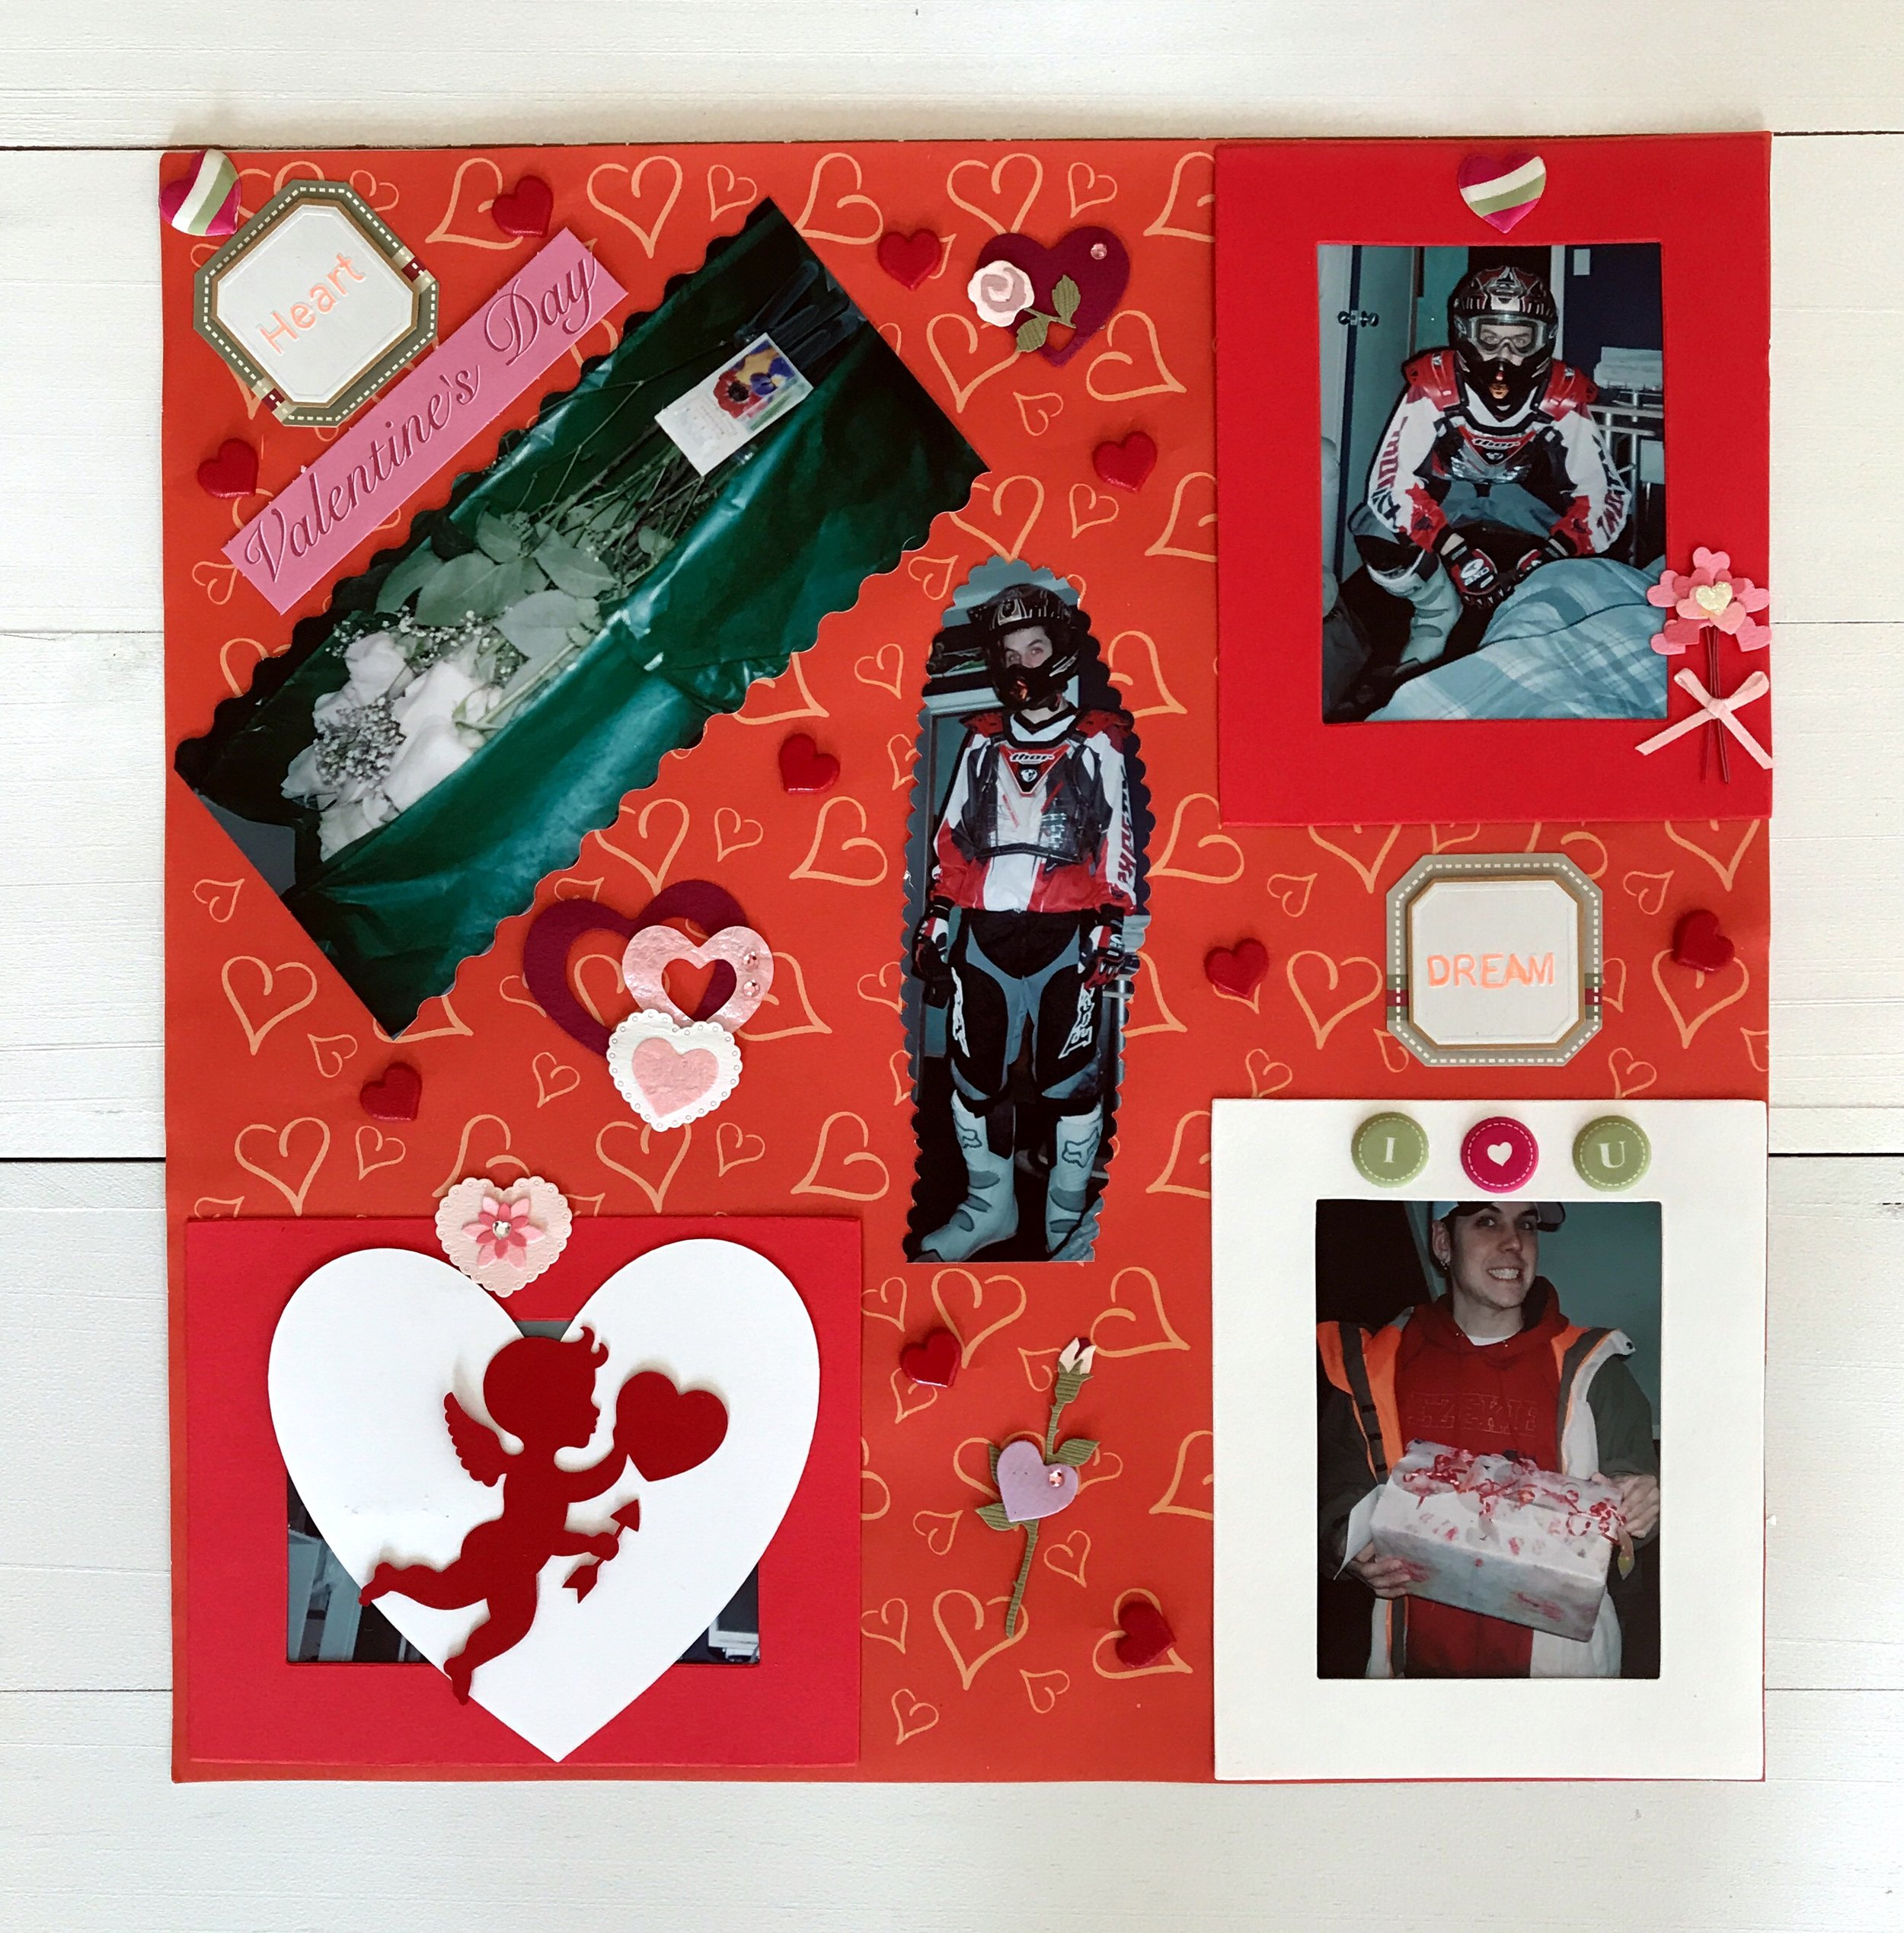 (From my scrapbook) Valentines Day 2003; I bought Anthony new dirt bike gear because I wanted him to be well protected. Thank goodness he doesn't ride anymore. My nerves couldn't handle it.